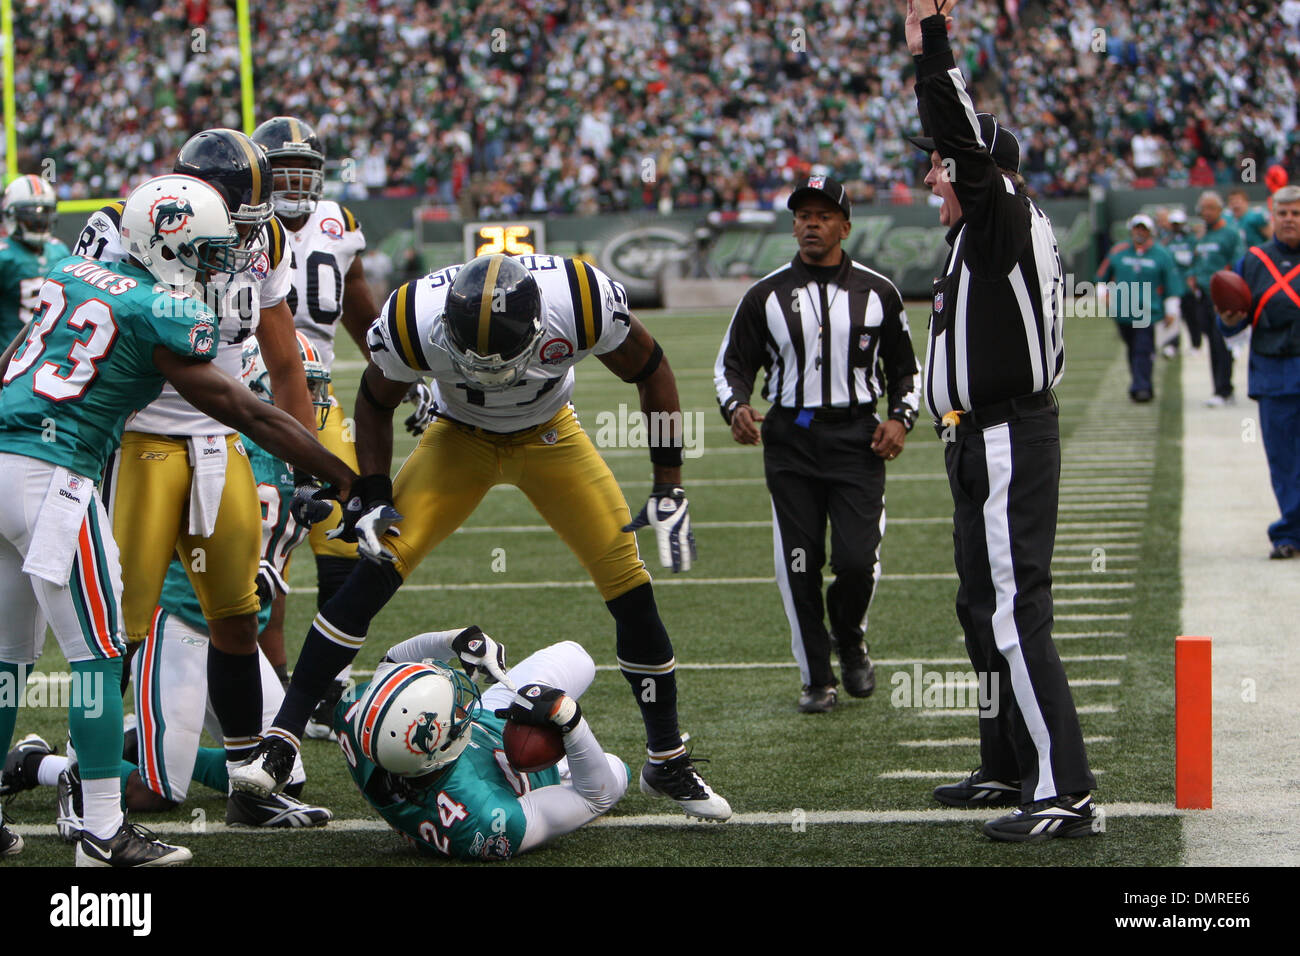 4d1fb318 The Miami Dolphins defeated the New York Jets 30-25 at Giants Stadium  Rutherford,